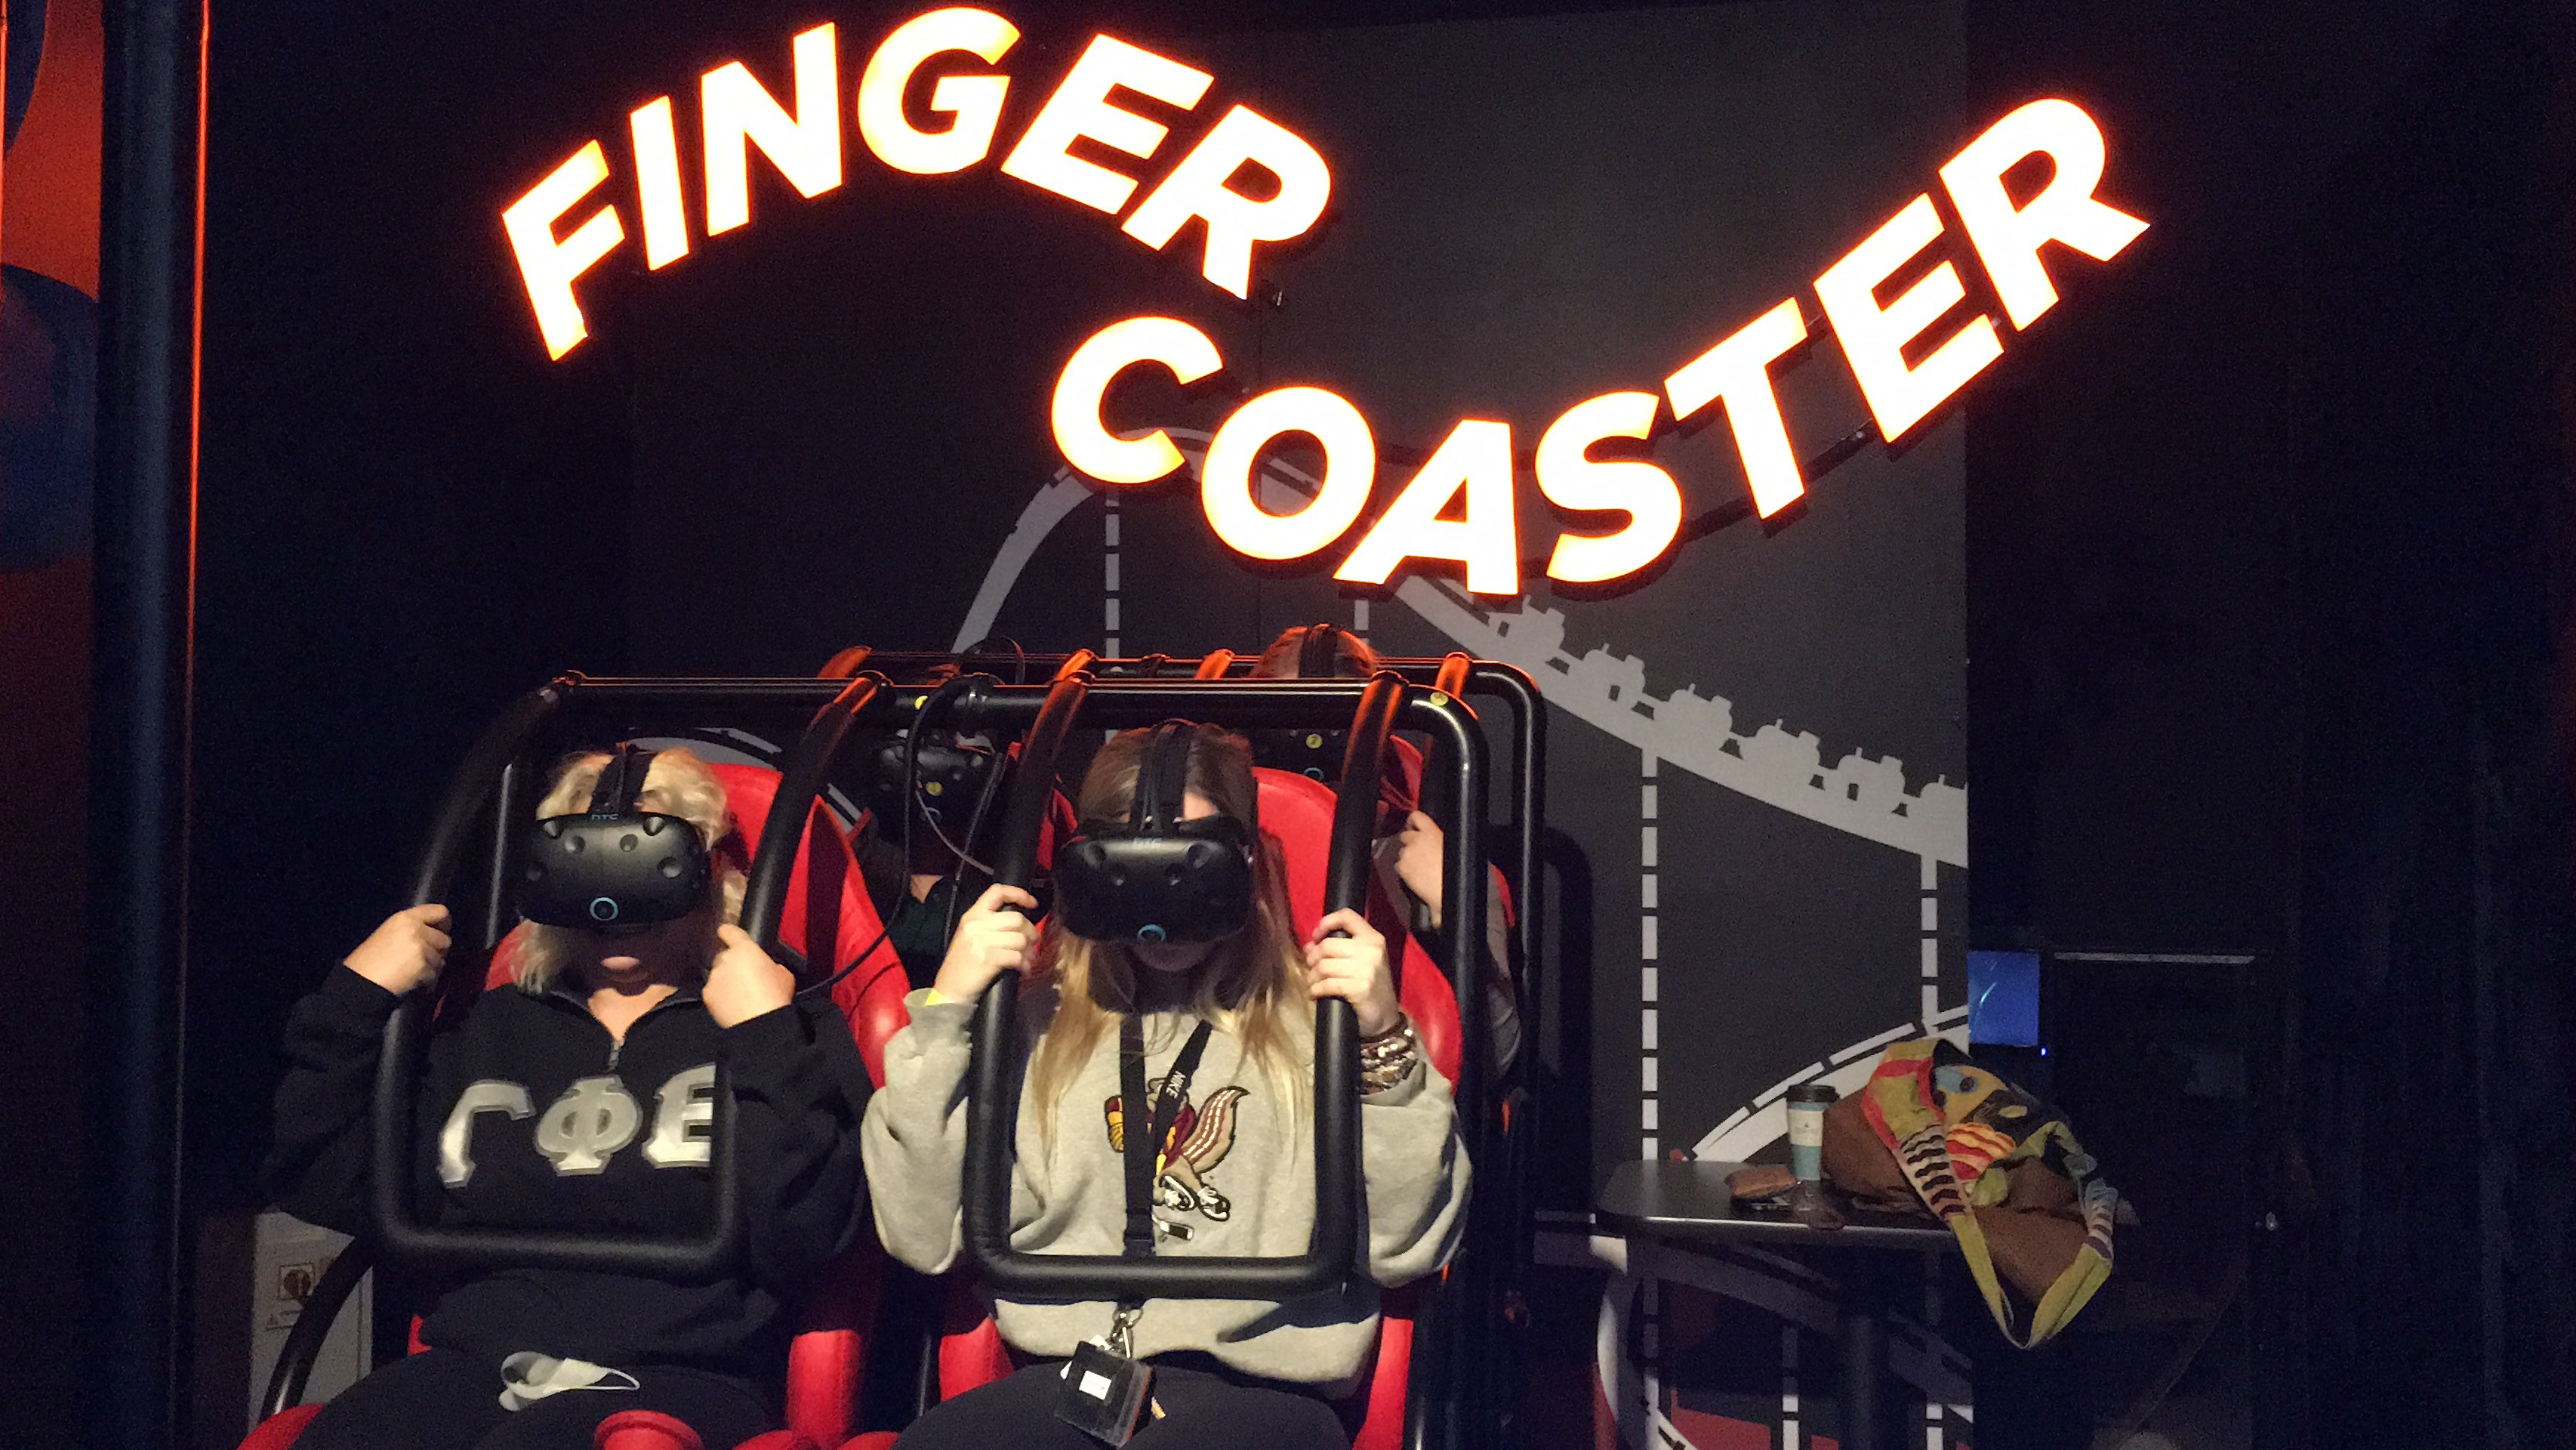 players riding finger coaster